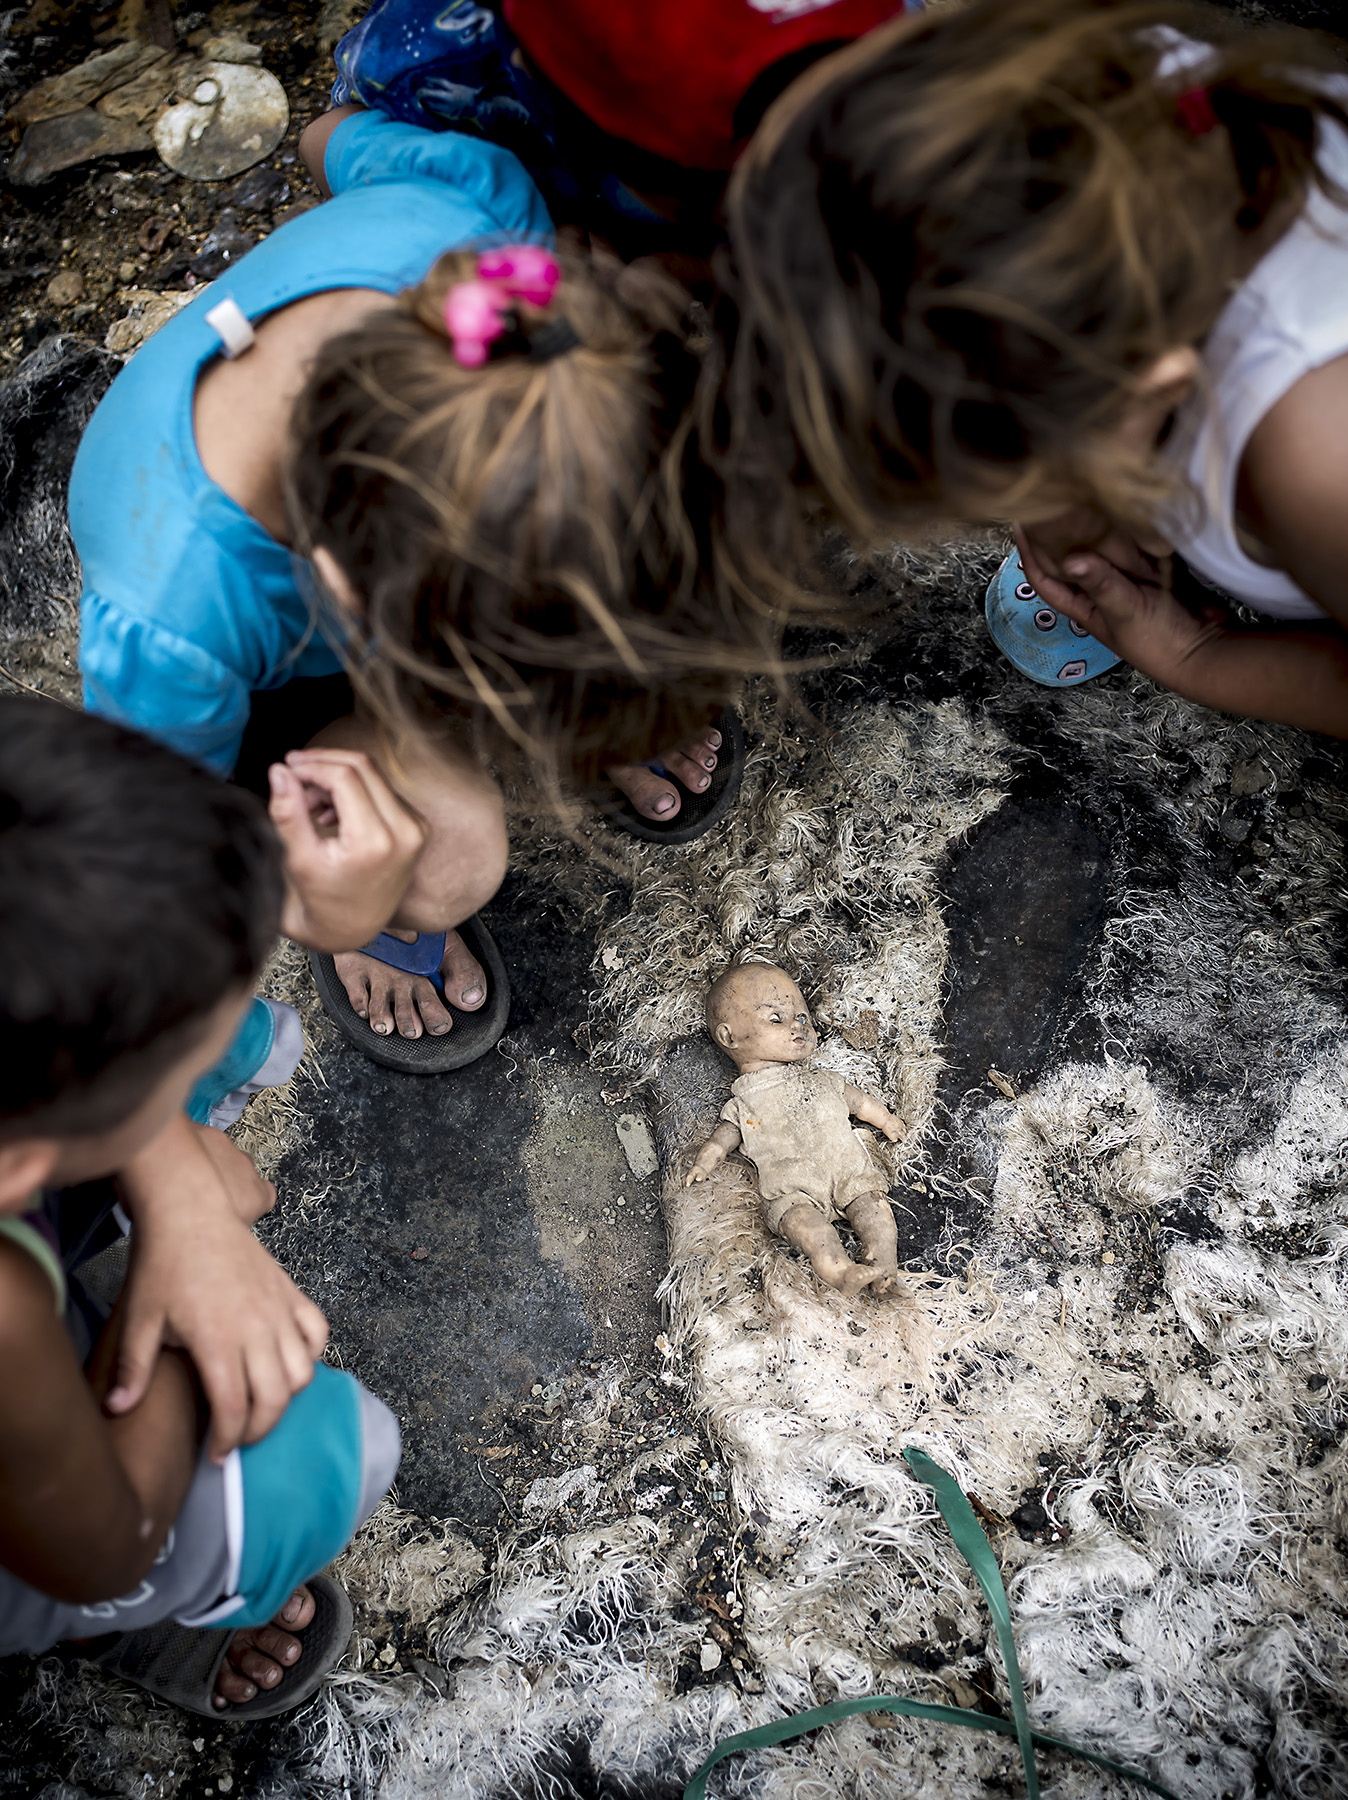 Kids finding a doll on top of animal skin.